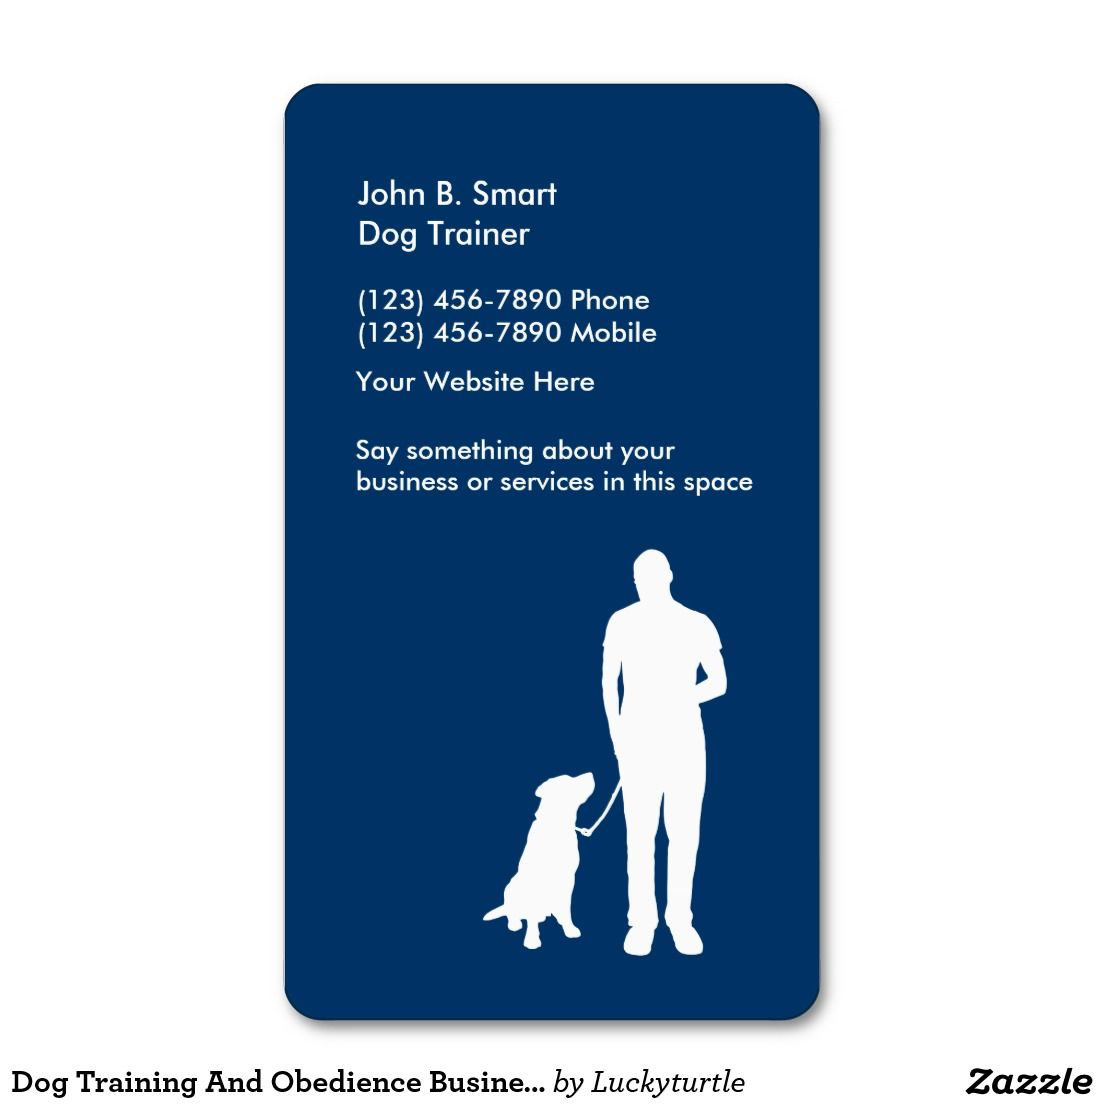 Dog Training And Obedience Business Cards | Business cards, Business ...